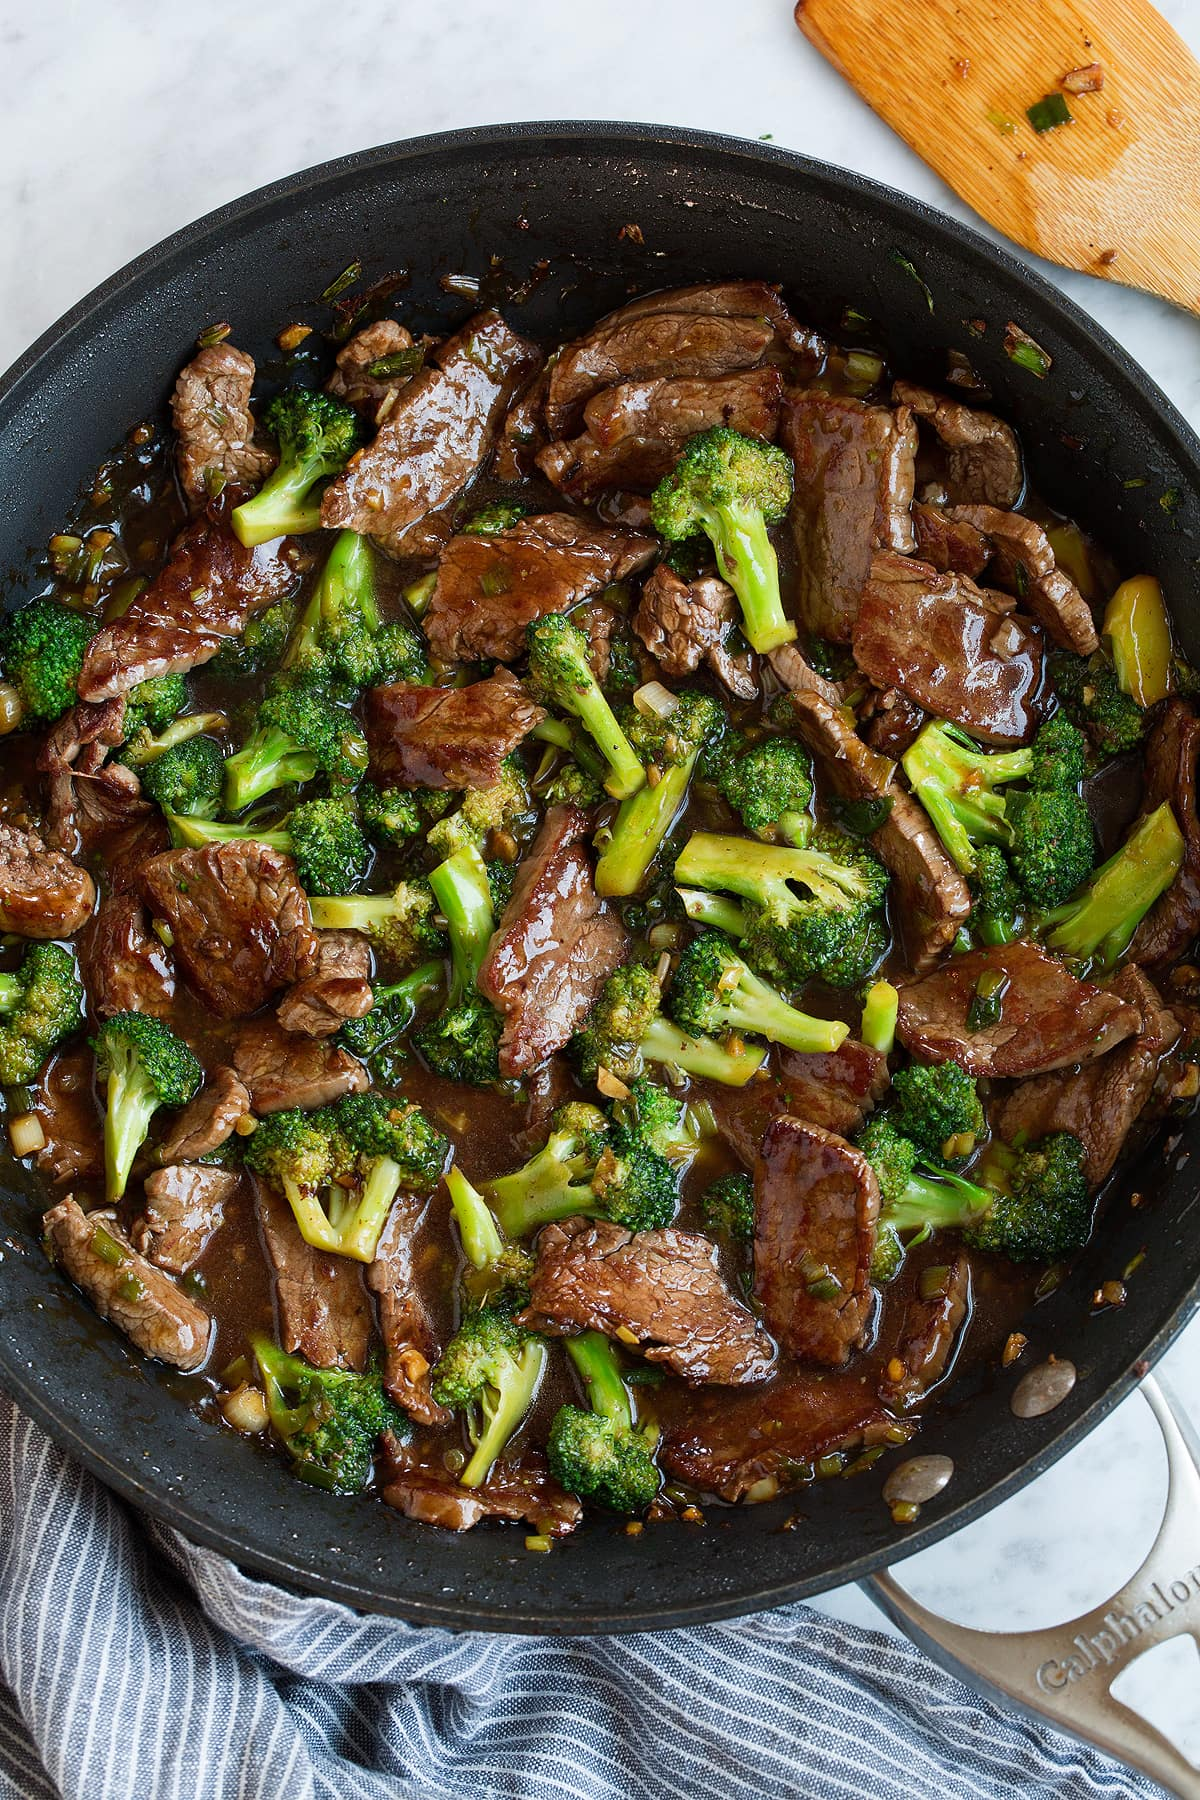 Finished beef and broccoli with sauce in a skillet.